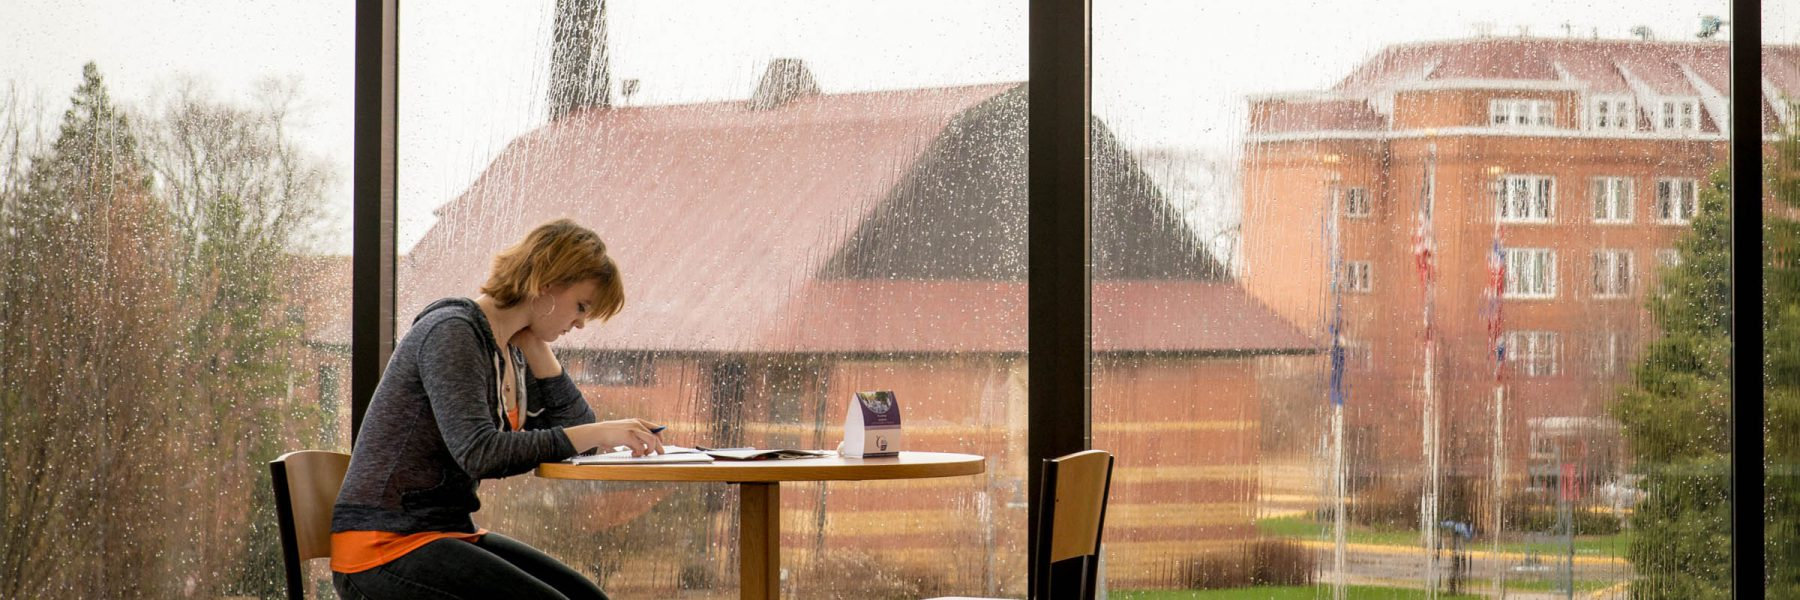 Student studying in North Lantern of Honsey Hall on a rainy day